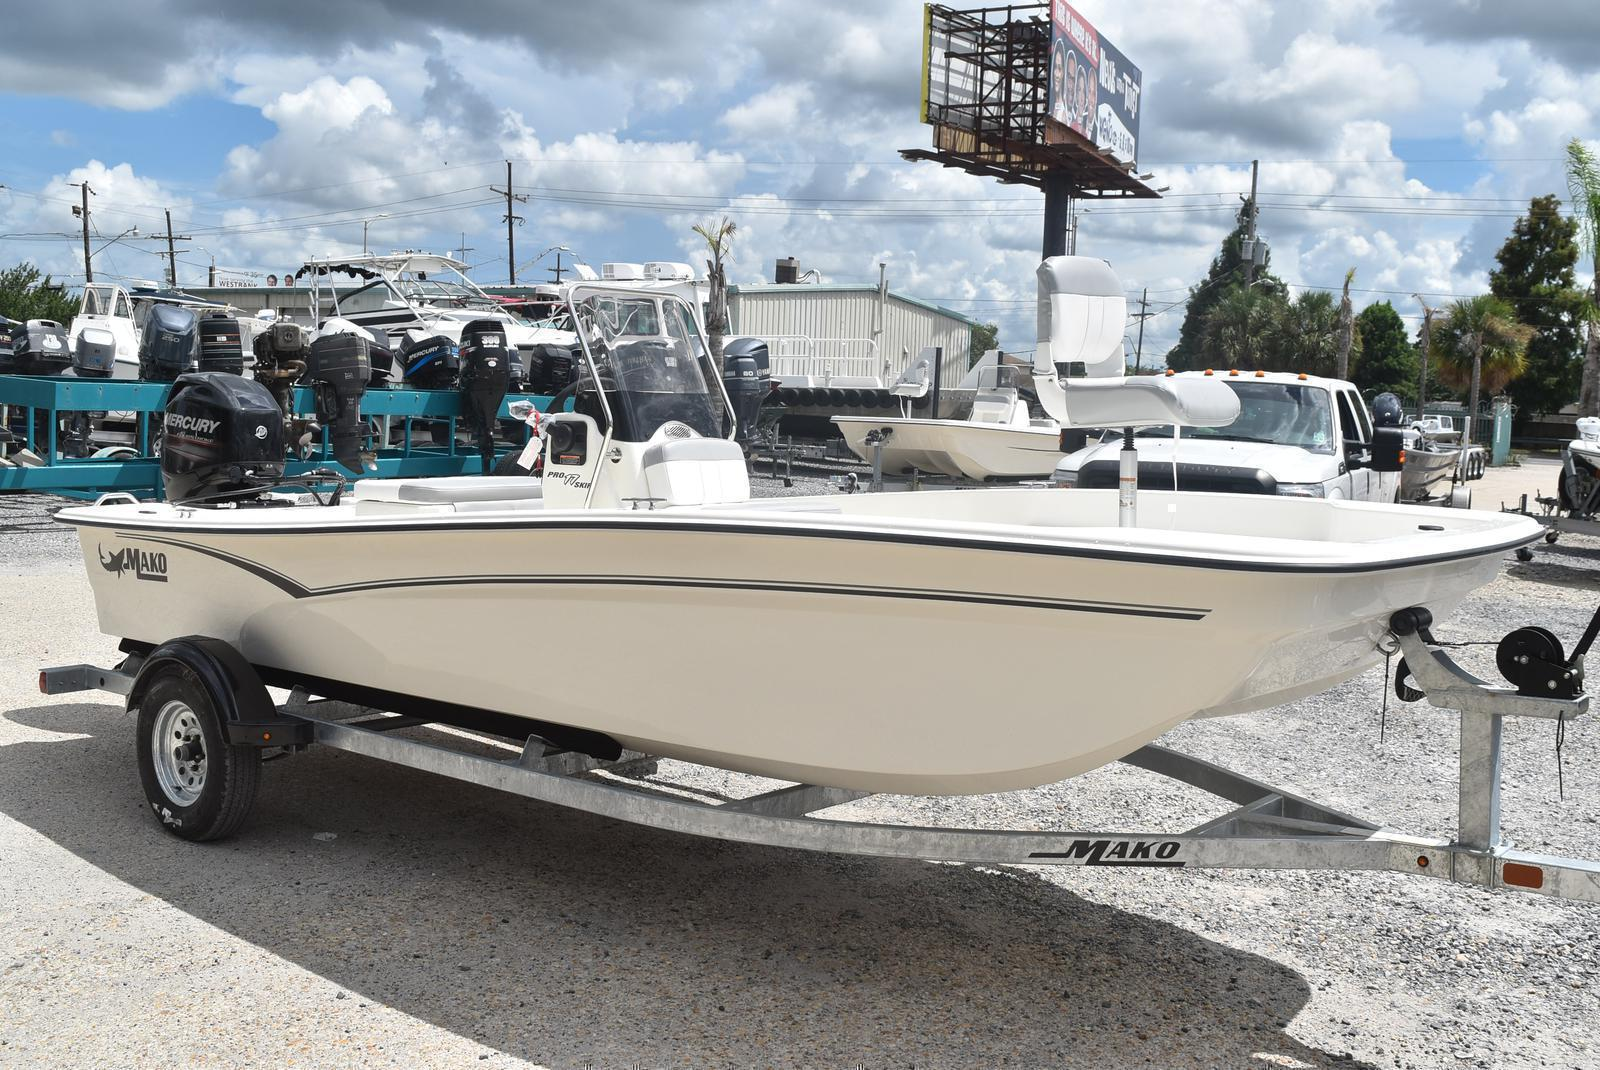 2020 Mako boat for sale, model of the boat is Pro Skiff 17, 75 ELPT & Image # 702 of 702